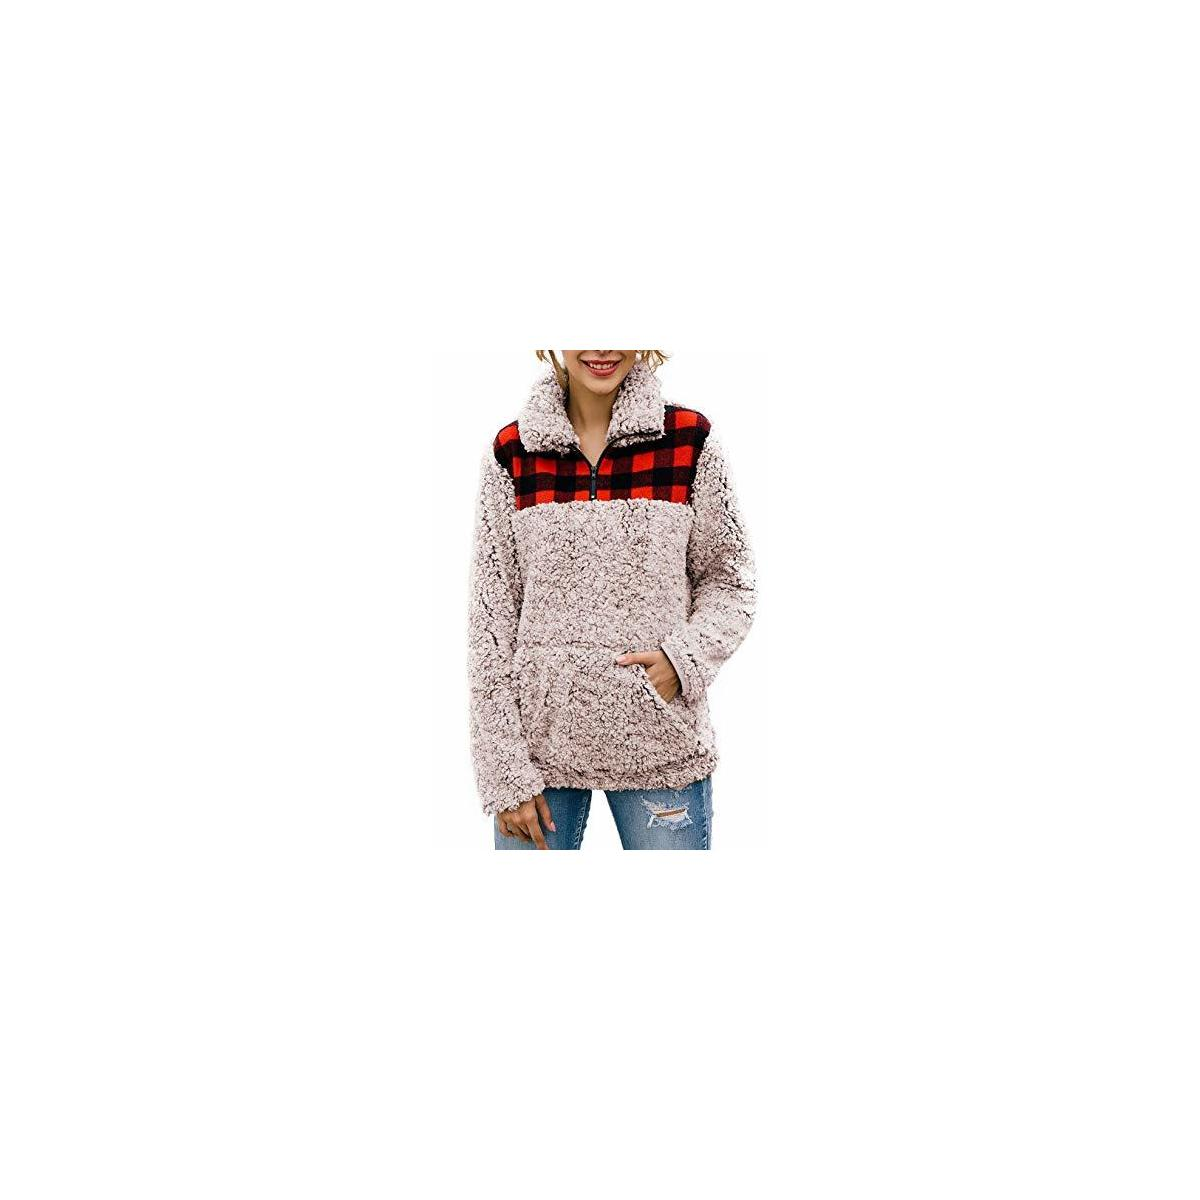 Women's Warm Fleece Color-Block Plaid Print Fluffy Sherpa Jacket Half Zipper Pullover Sweater with Pockets